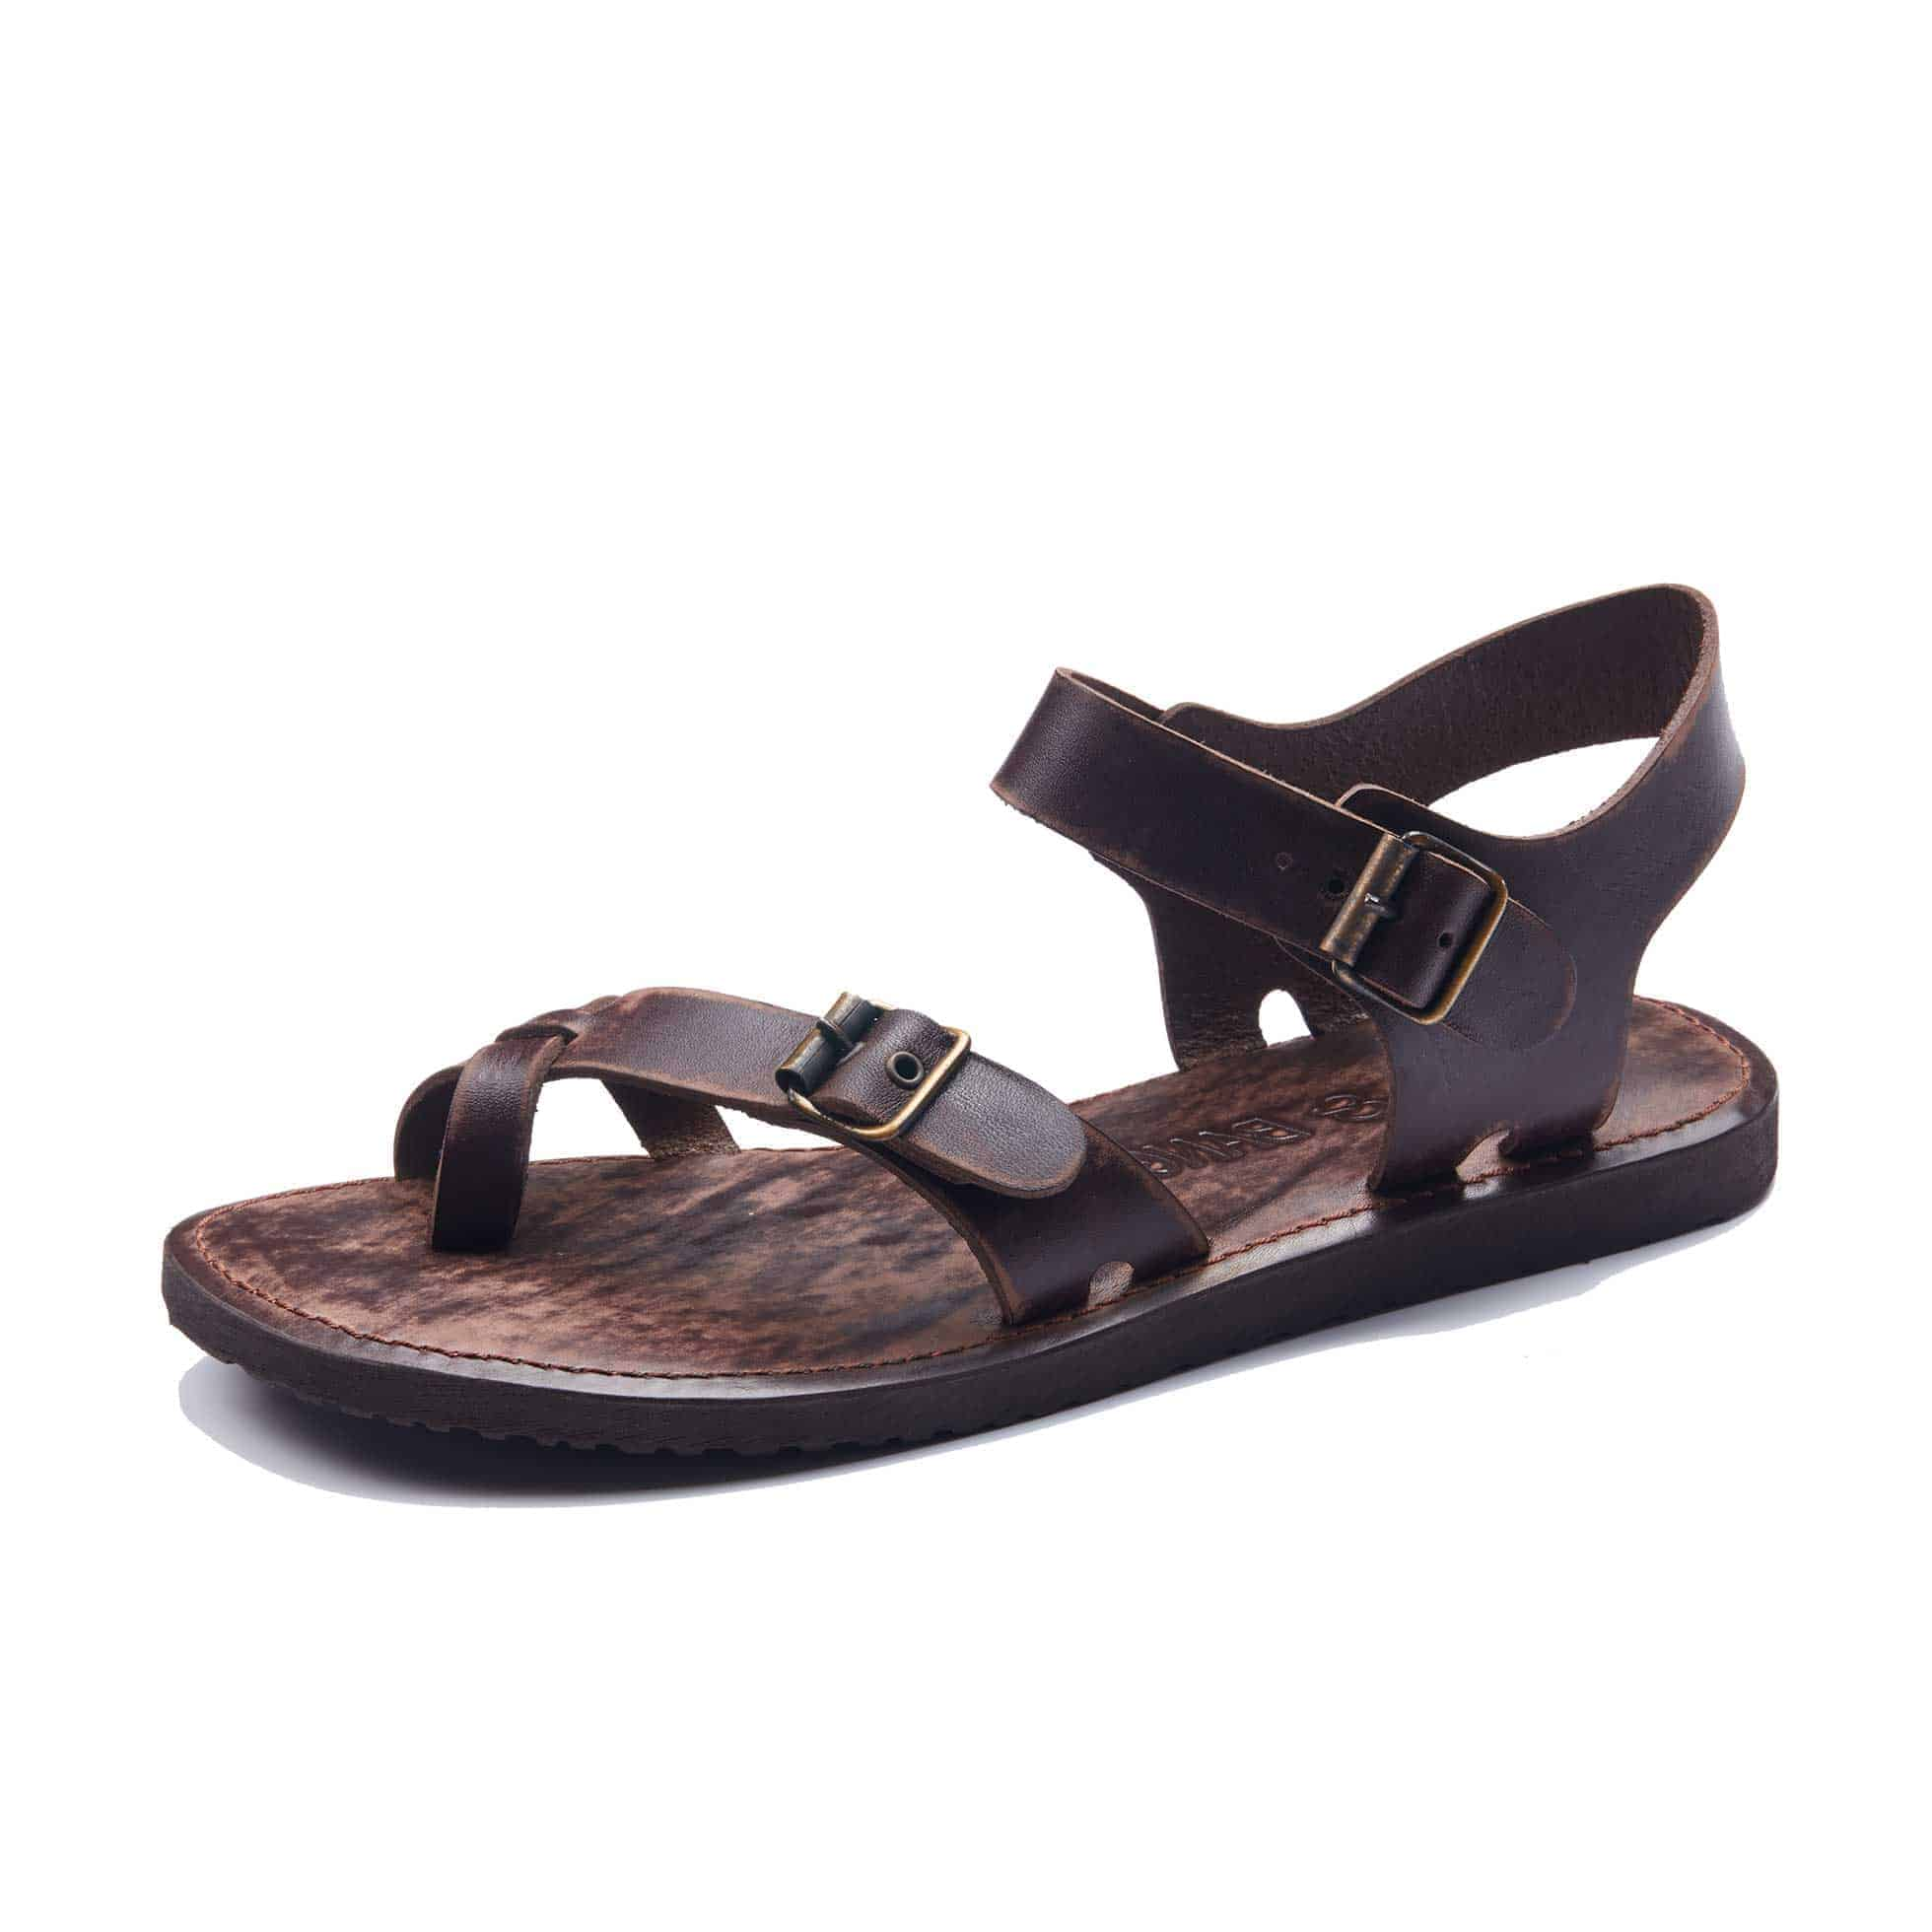 aa75c22b8e8f0a Handmade Leather Bodrum Sandals- Best Mens Strappy Leather Sandals.